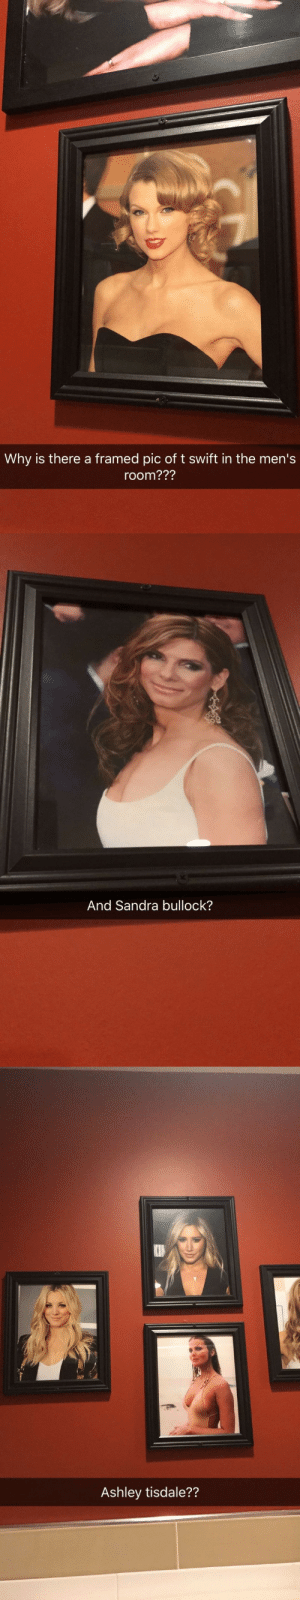 Tumblr, Blog, and Sandra Bullock: Why is there a framed pic of t swift in the men's  room???   And Sandra bullock?   Ashley tisdale?? zackisontumblr:  weirdest men's room i've ever been in